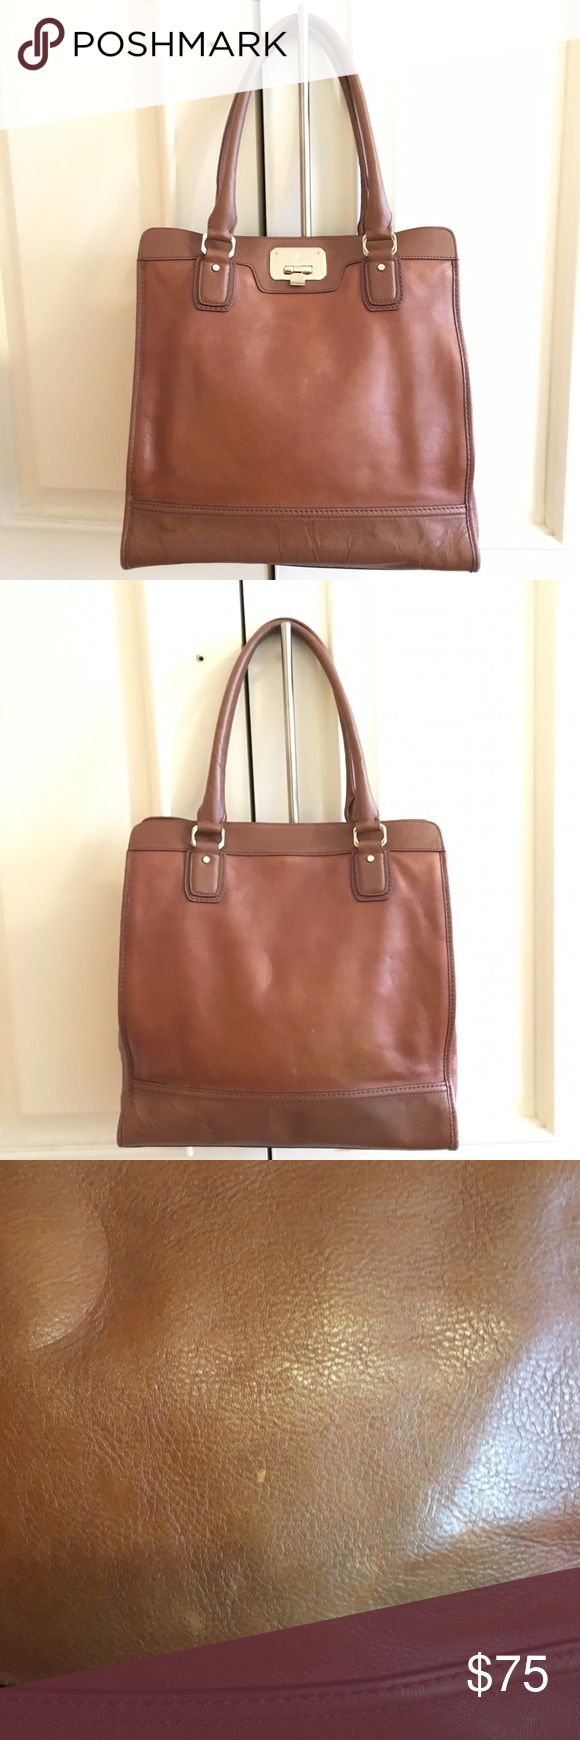 Cole Haan Vintage Valise II Kendra Tote Cole Haan Vintage Valise II Kendra Tote. Color is Tan/Cognac (Woodbury) with Orange lining and Goldtone hardware. Super cute tall Tote bag shape. Item as pictured. Final sale. Cole Haan Bags Totes